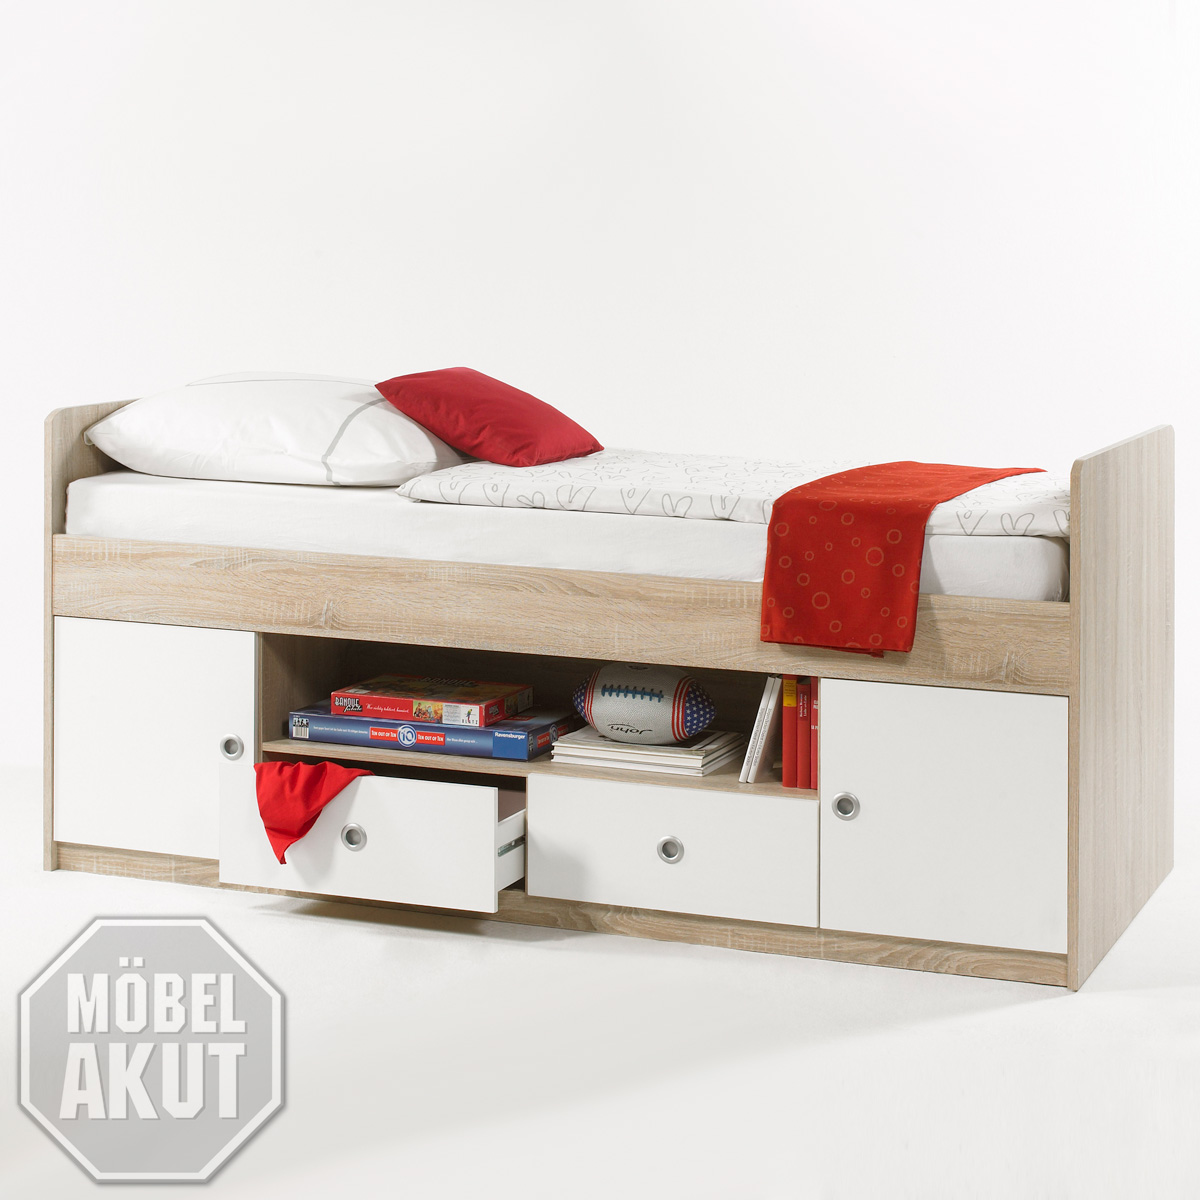 hochbett wiki kinderbett bett in sonoma eiche s gerau und. Black Bedroom Furniture Sets. Home Design Ideas